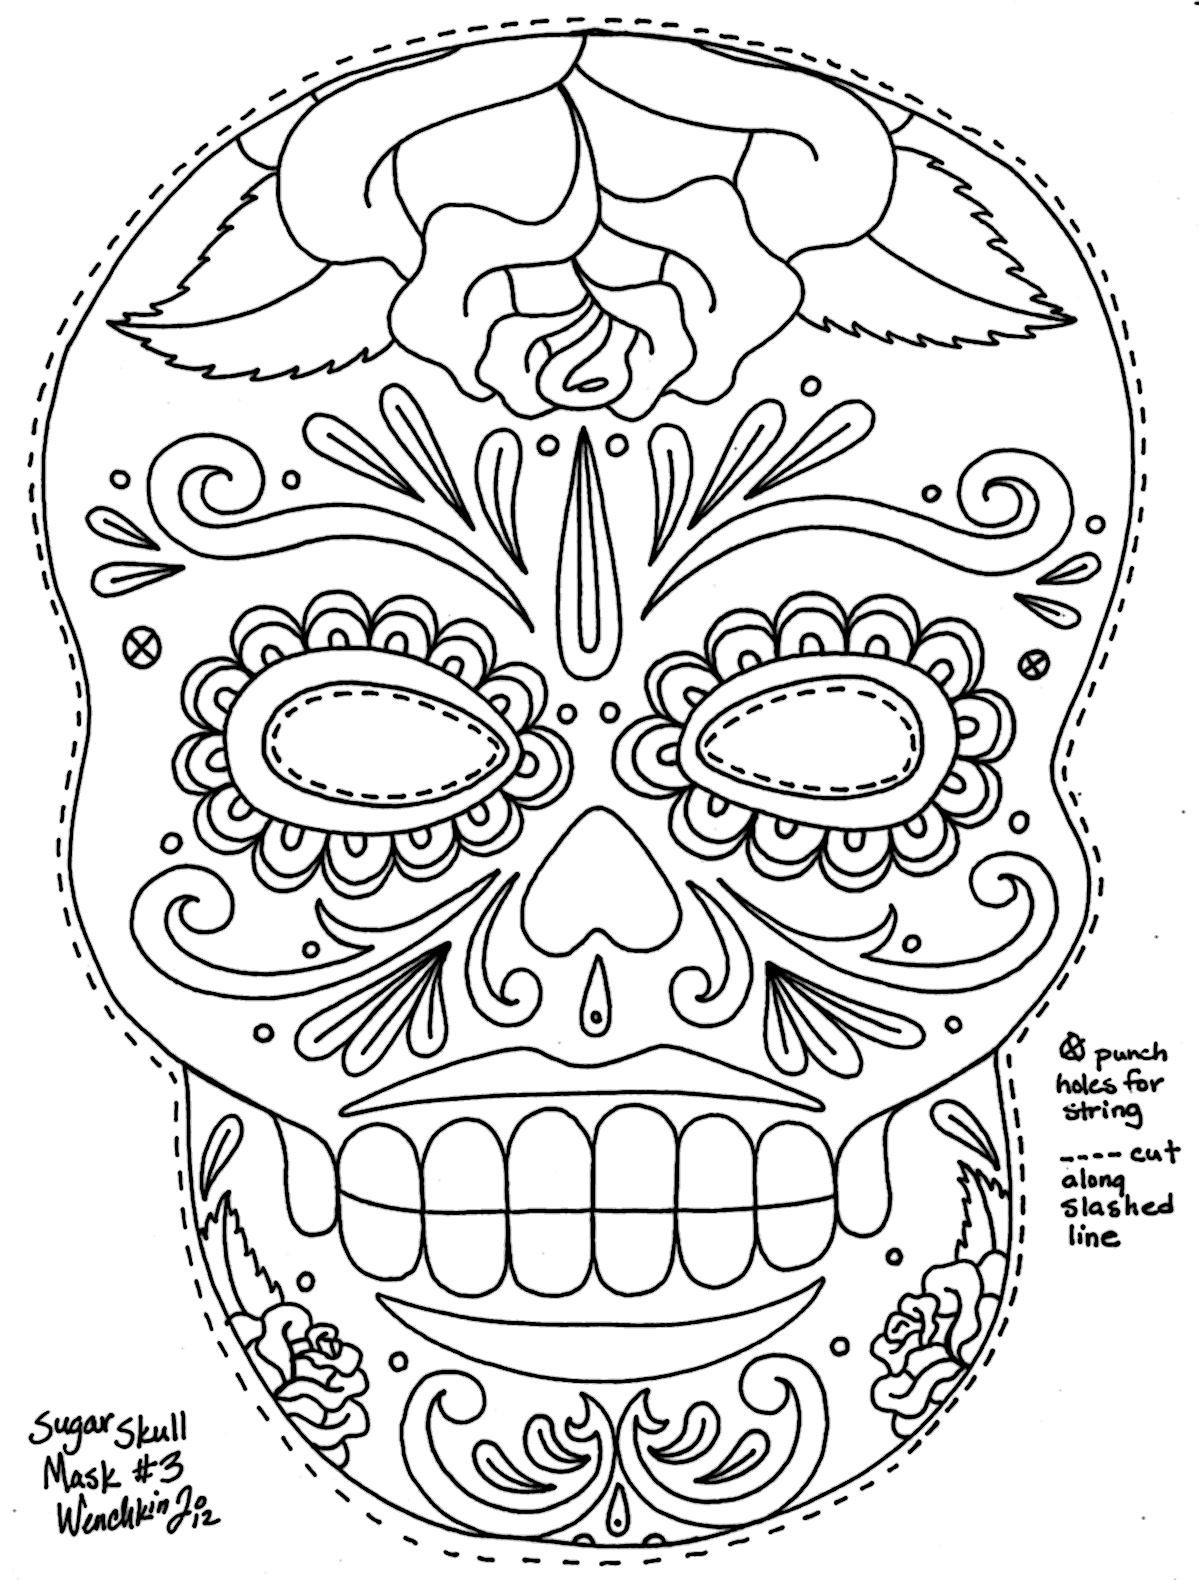 the mask coloring pages - skull mask coloring pages only coloring pages